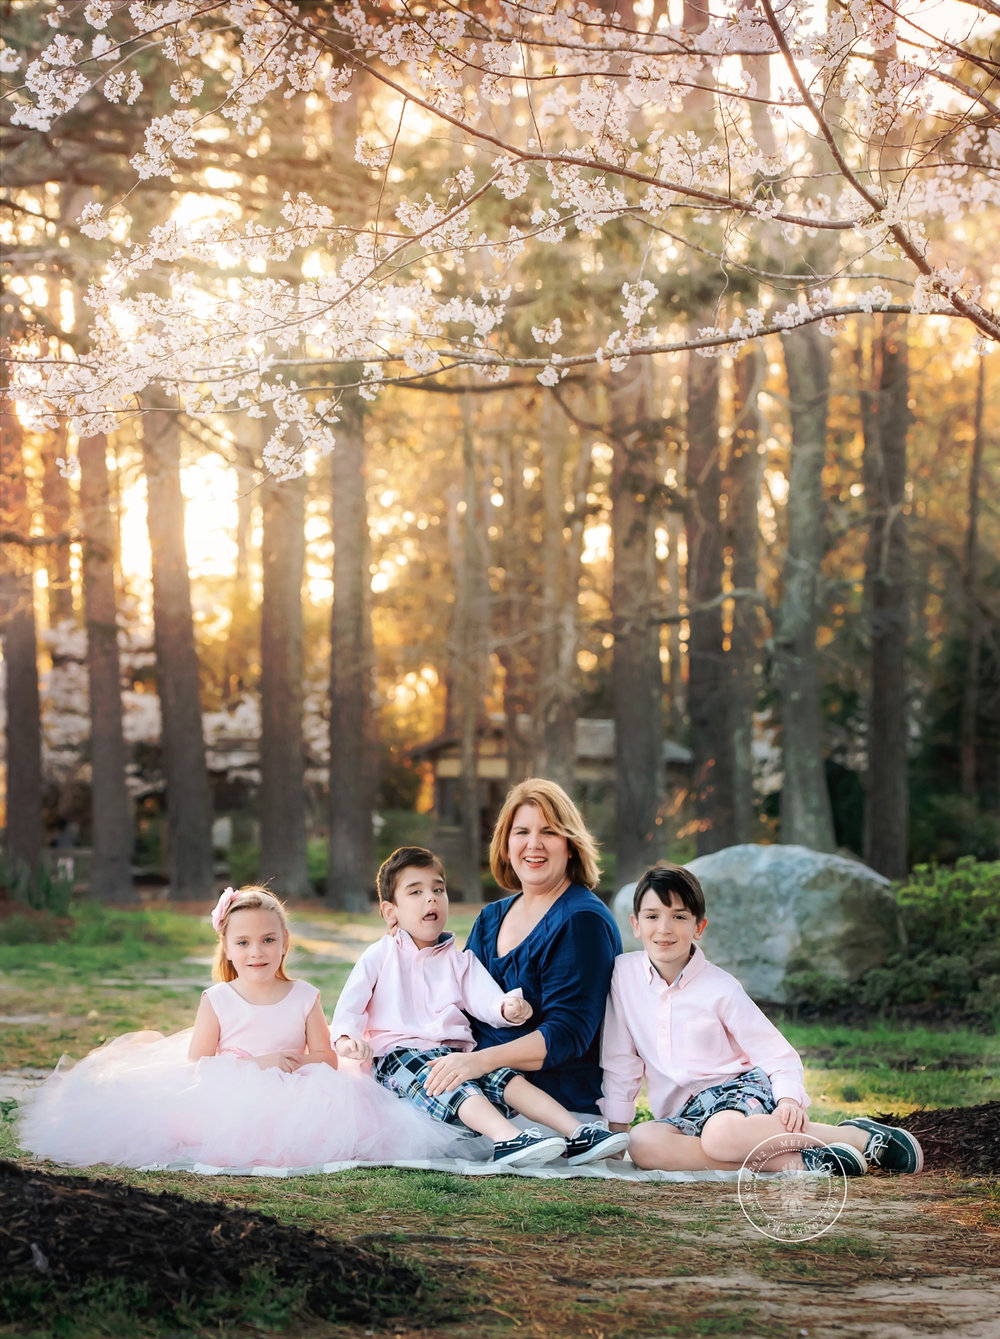 cherry-blossom-family-at-red-wing-park-virginia-beach-photographers-melissa-bliss-photography